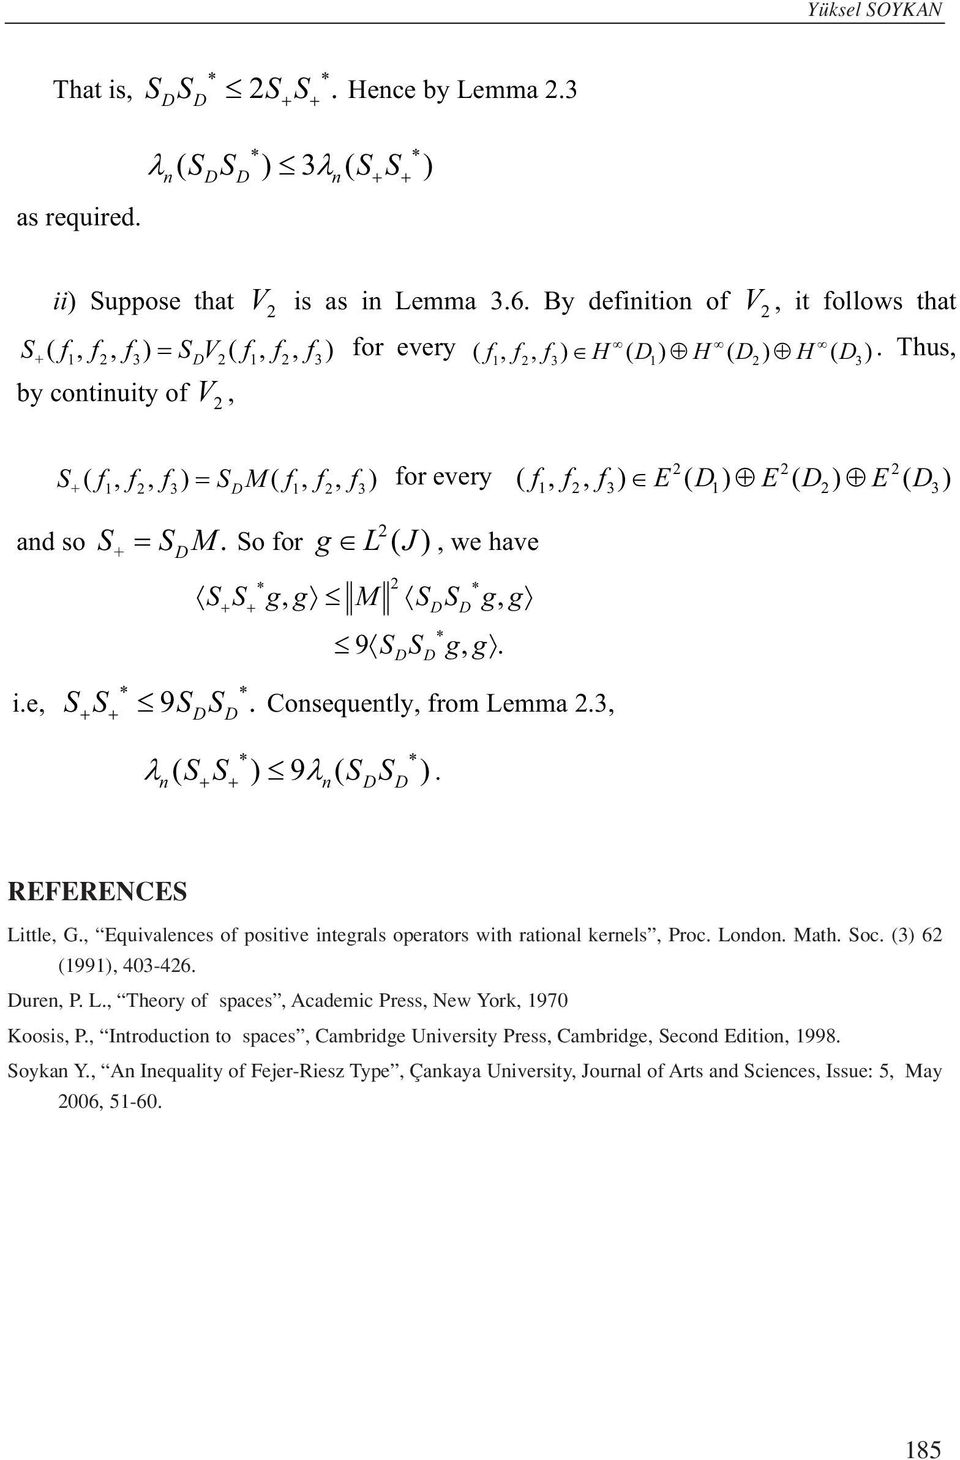 from Lemma, n( SS ) 9 n( SS ) REFERENCES Little, G, Equivalences of positive integrals operators with rational ernels, Proc London Math Soc () 6 (99), 40-46 uren, P L, Theory of spaces, Academic